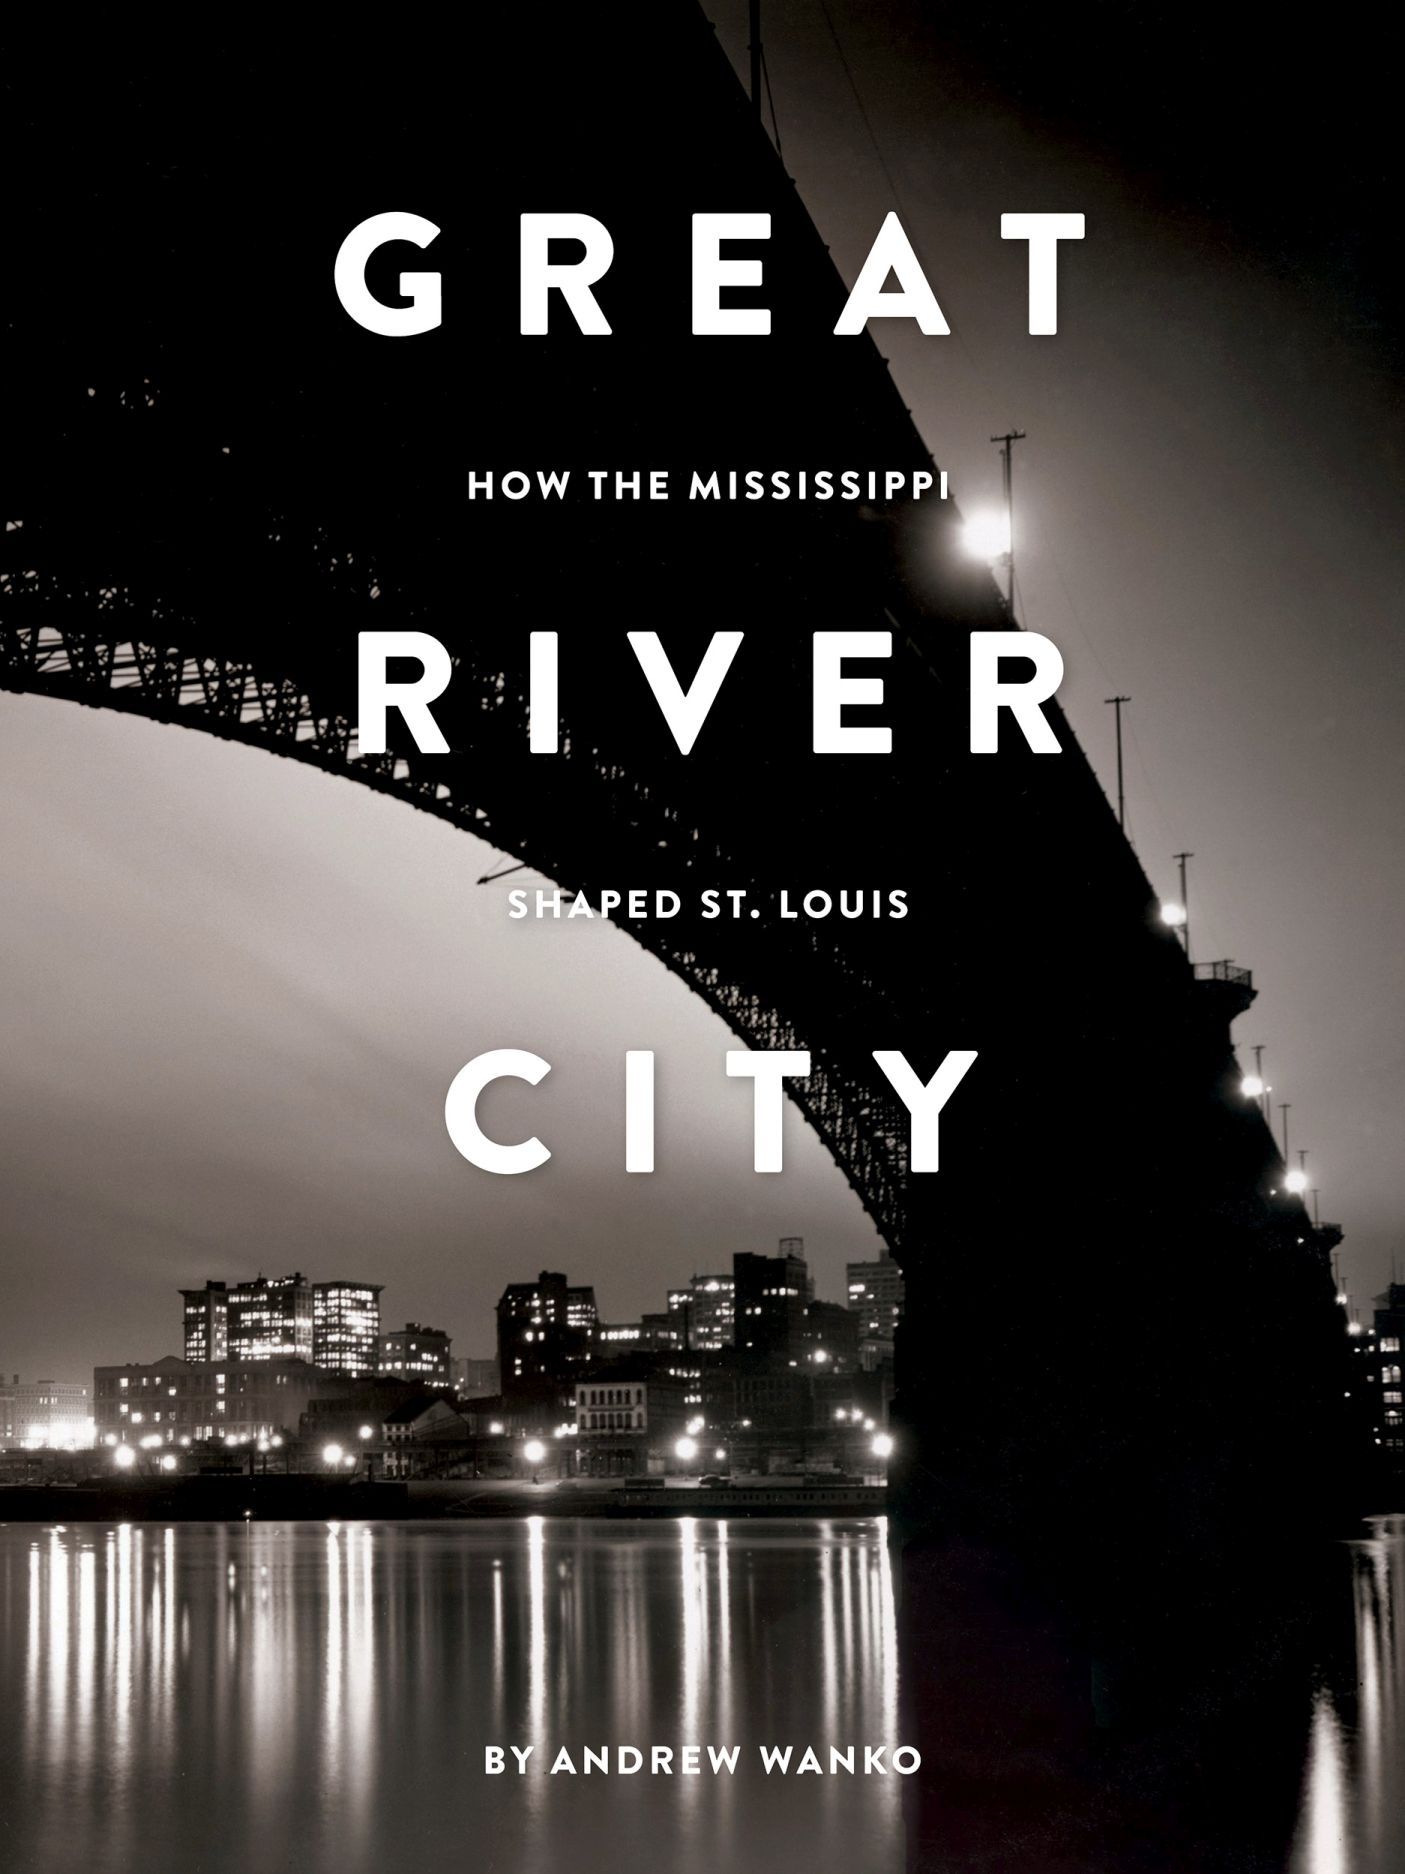 Great River City: How the Mississippi Shaped St. Louis